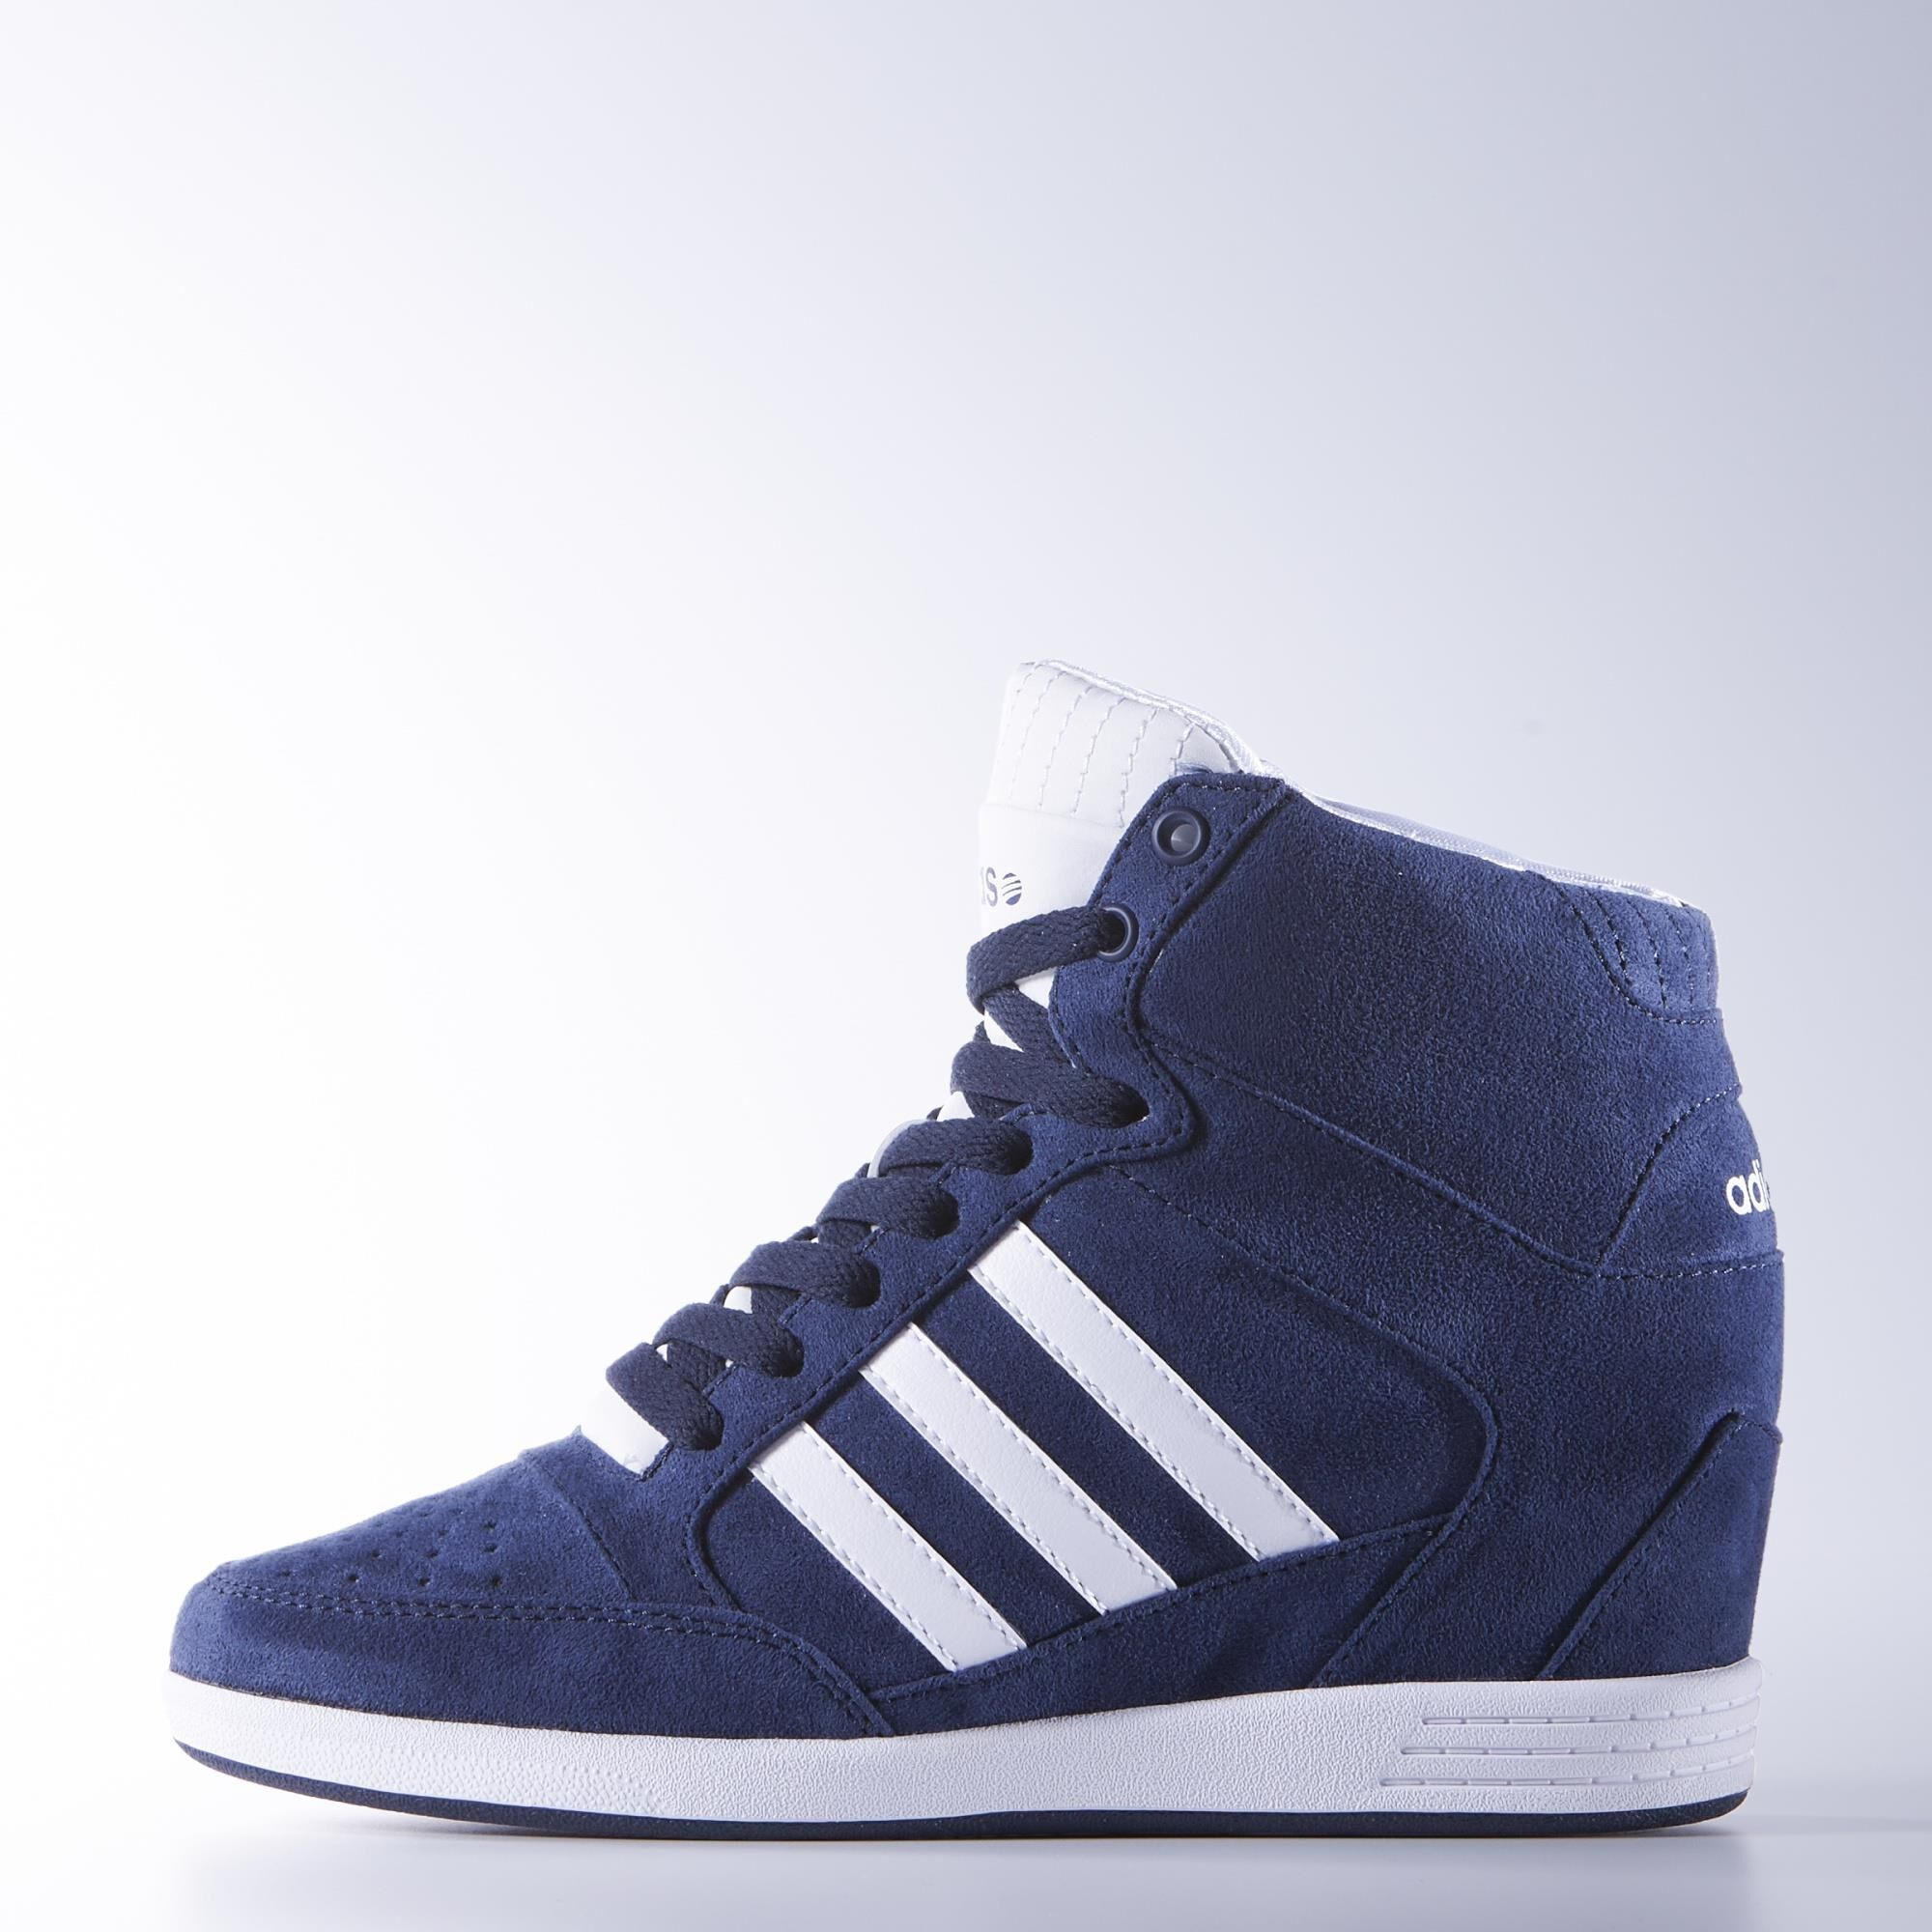 Adidas Neo Super Wedge Sneakers